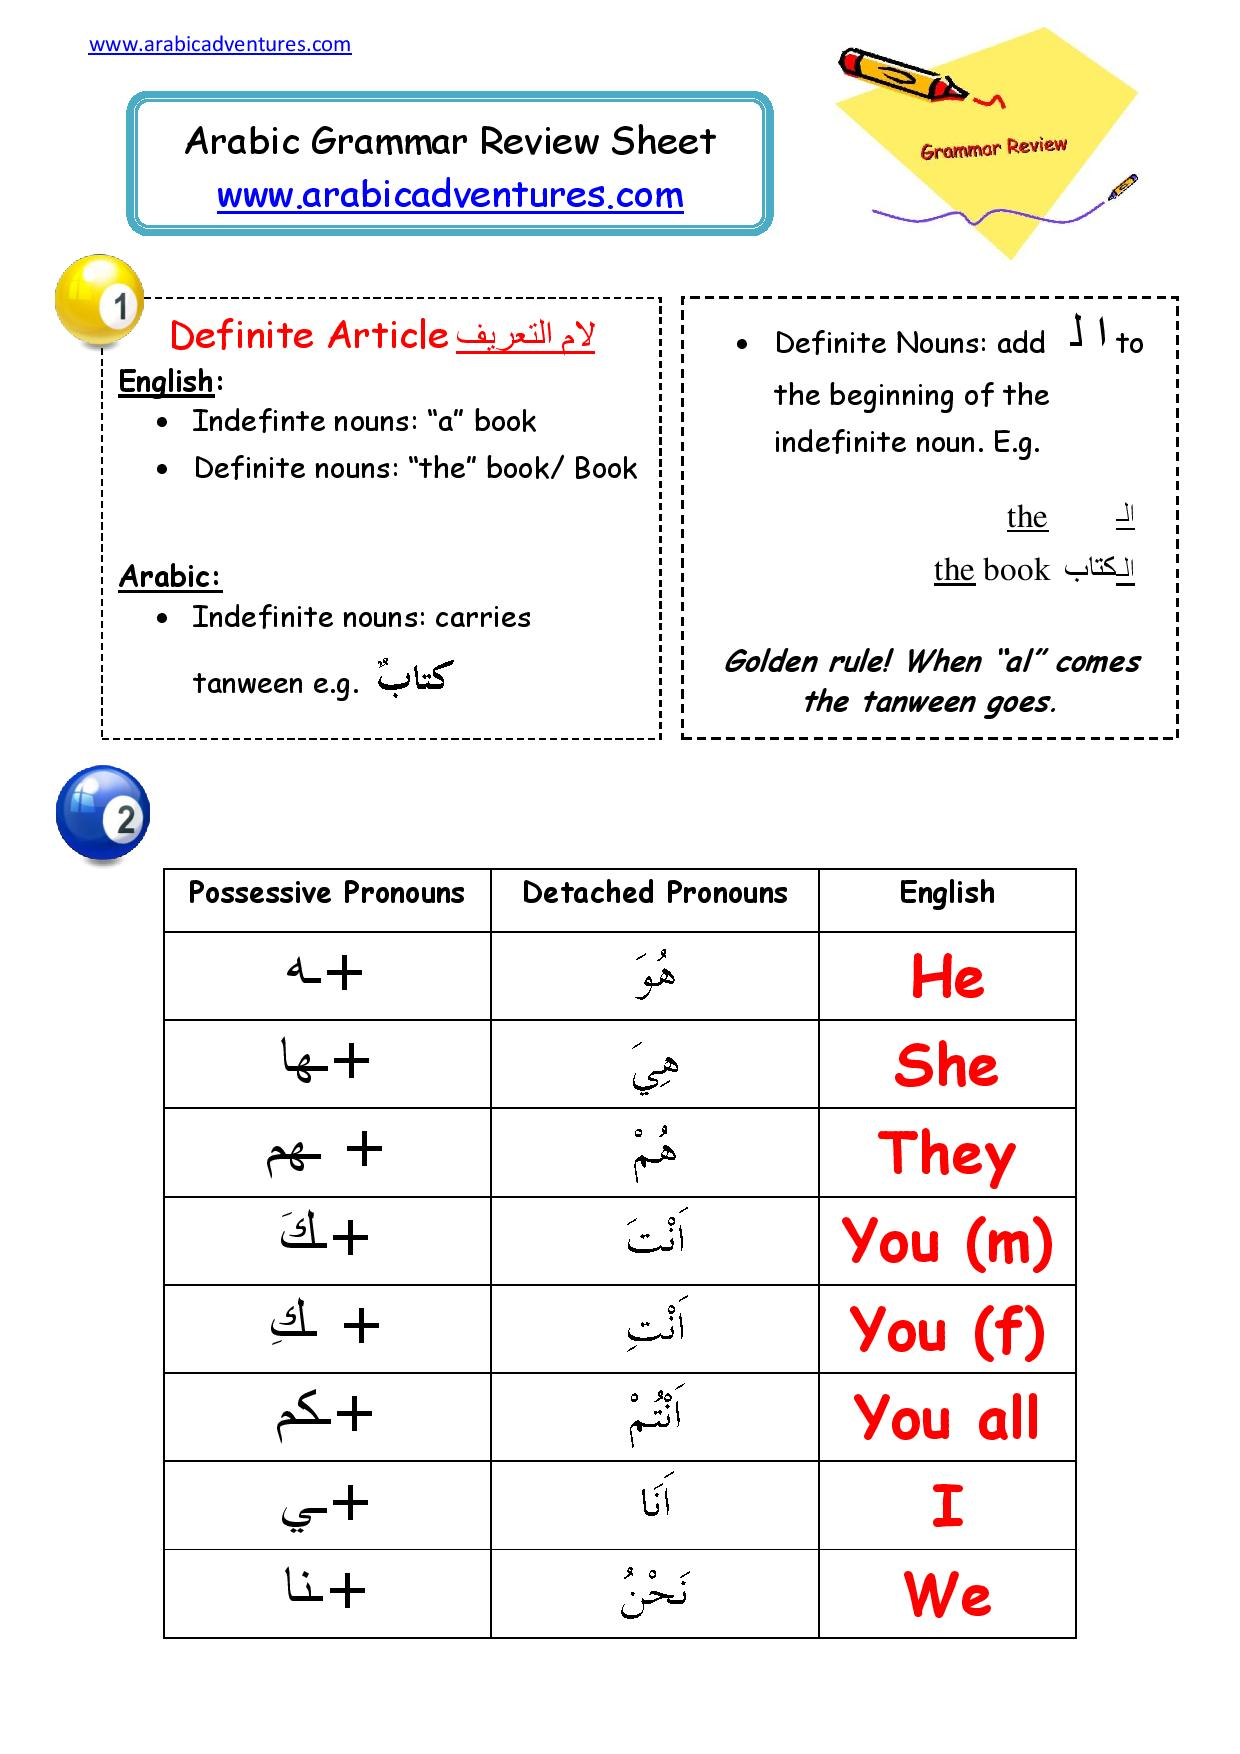 Attahed Pronouns Arabic